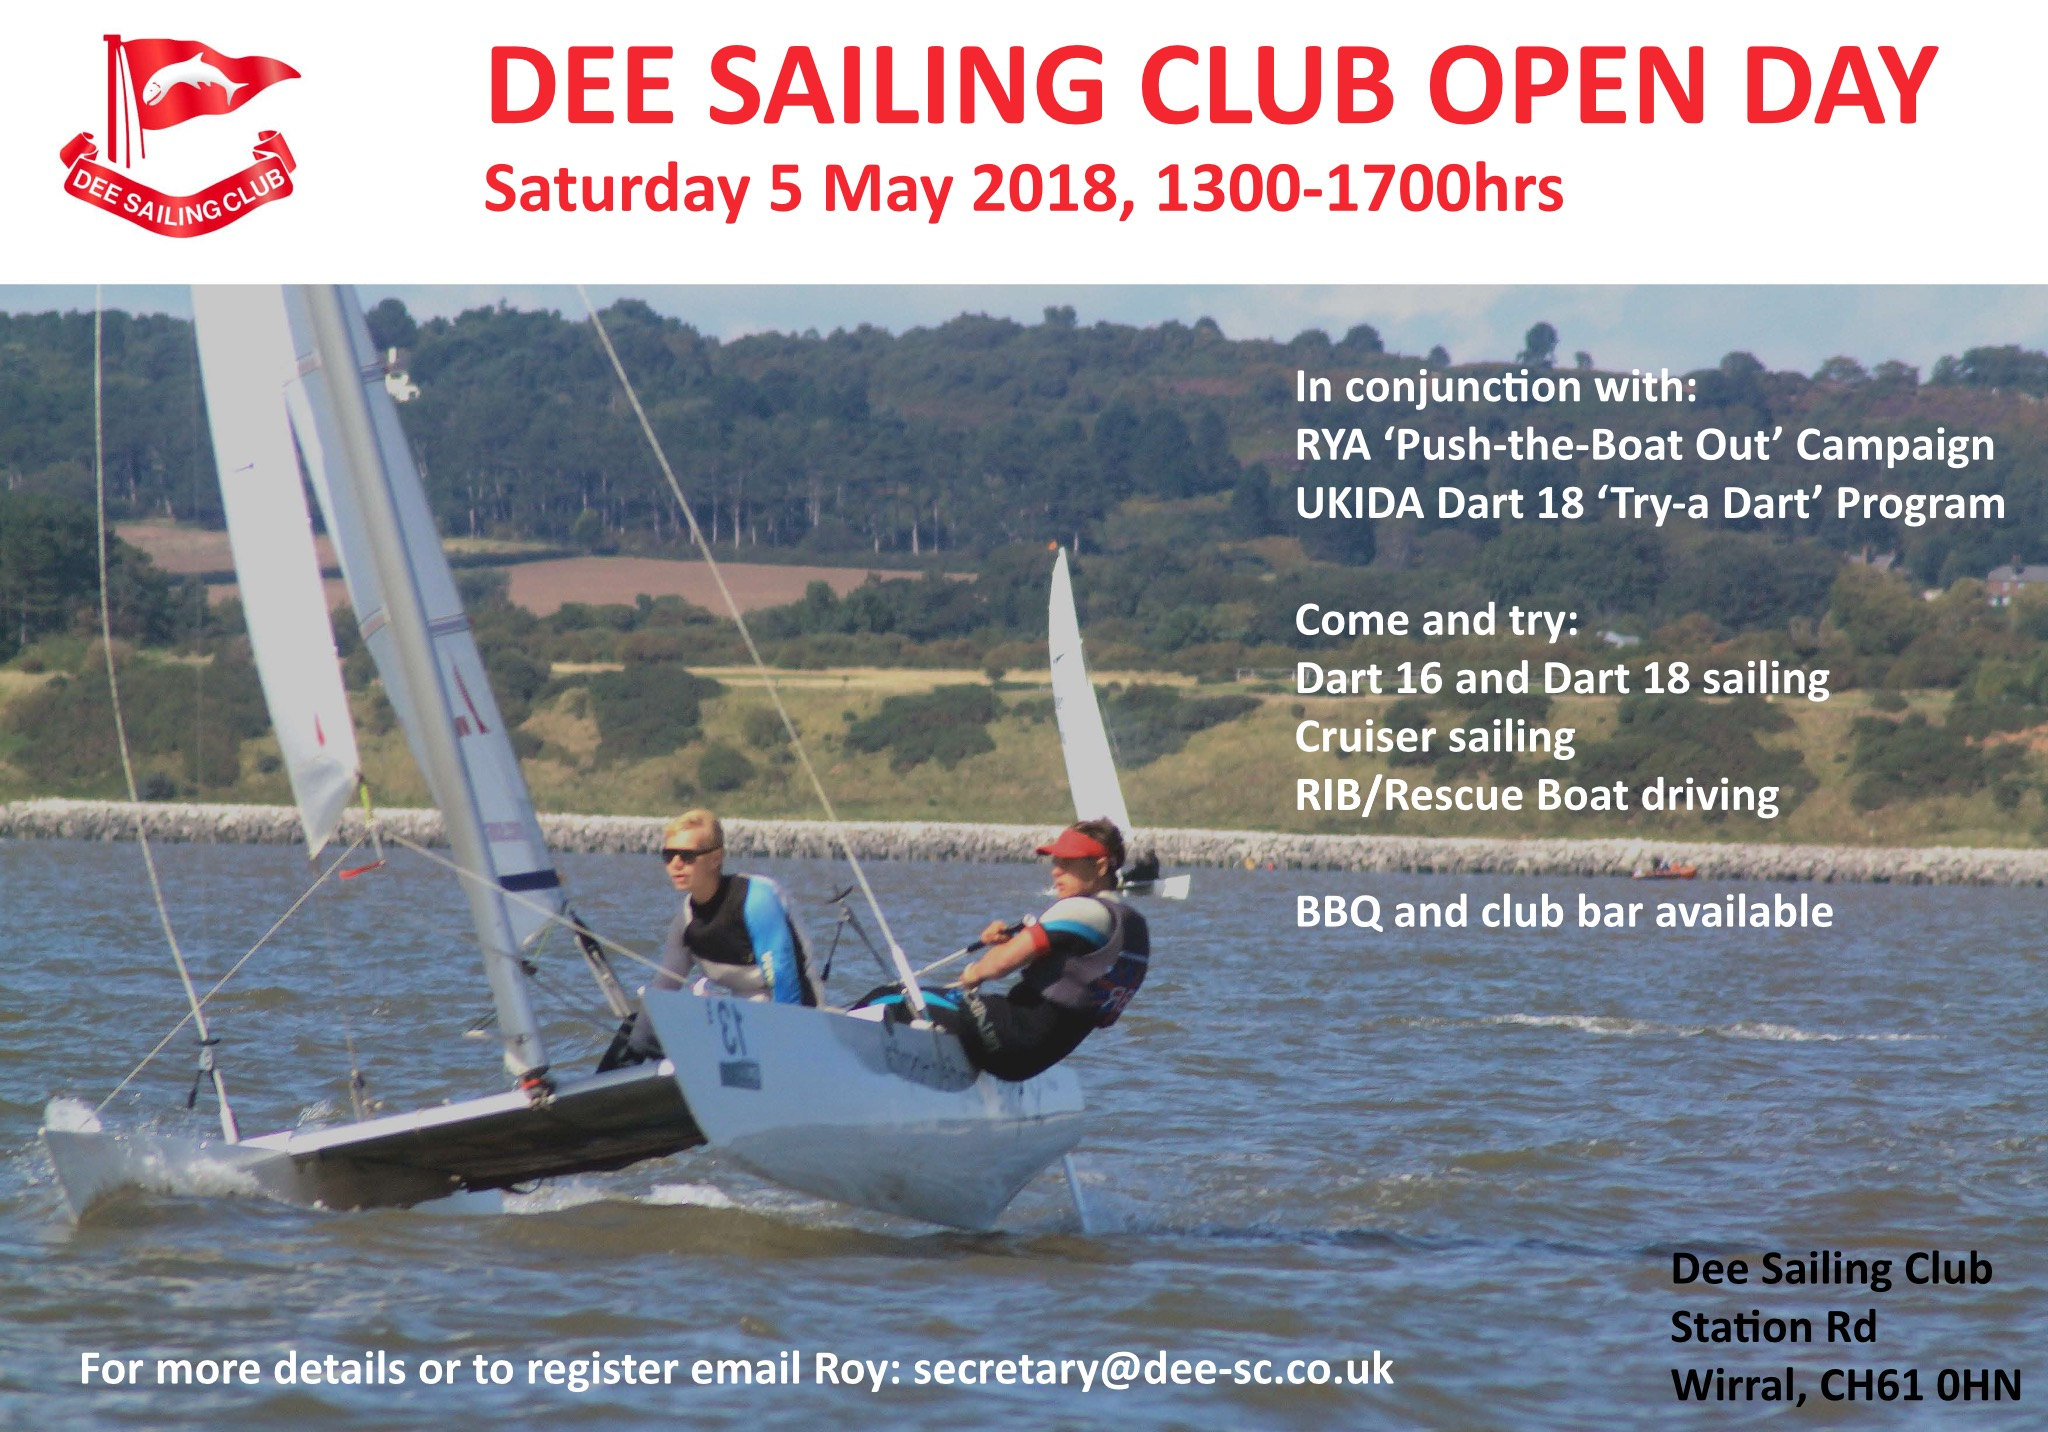 Dee Sailing Club Open Day